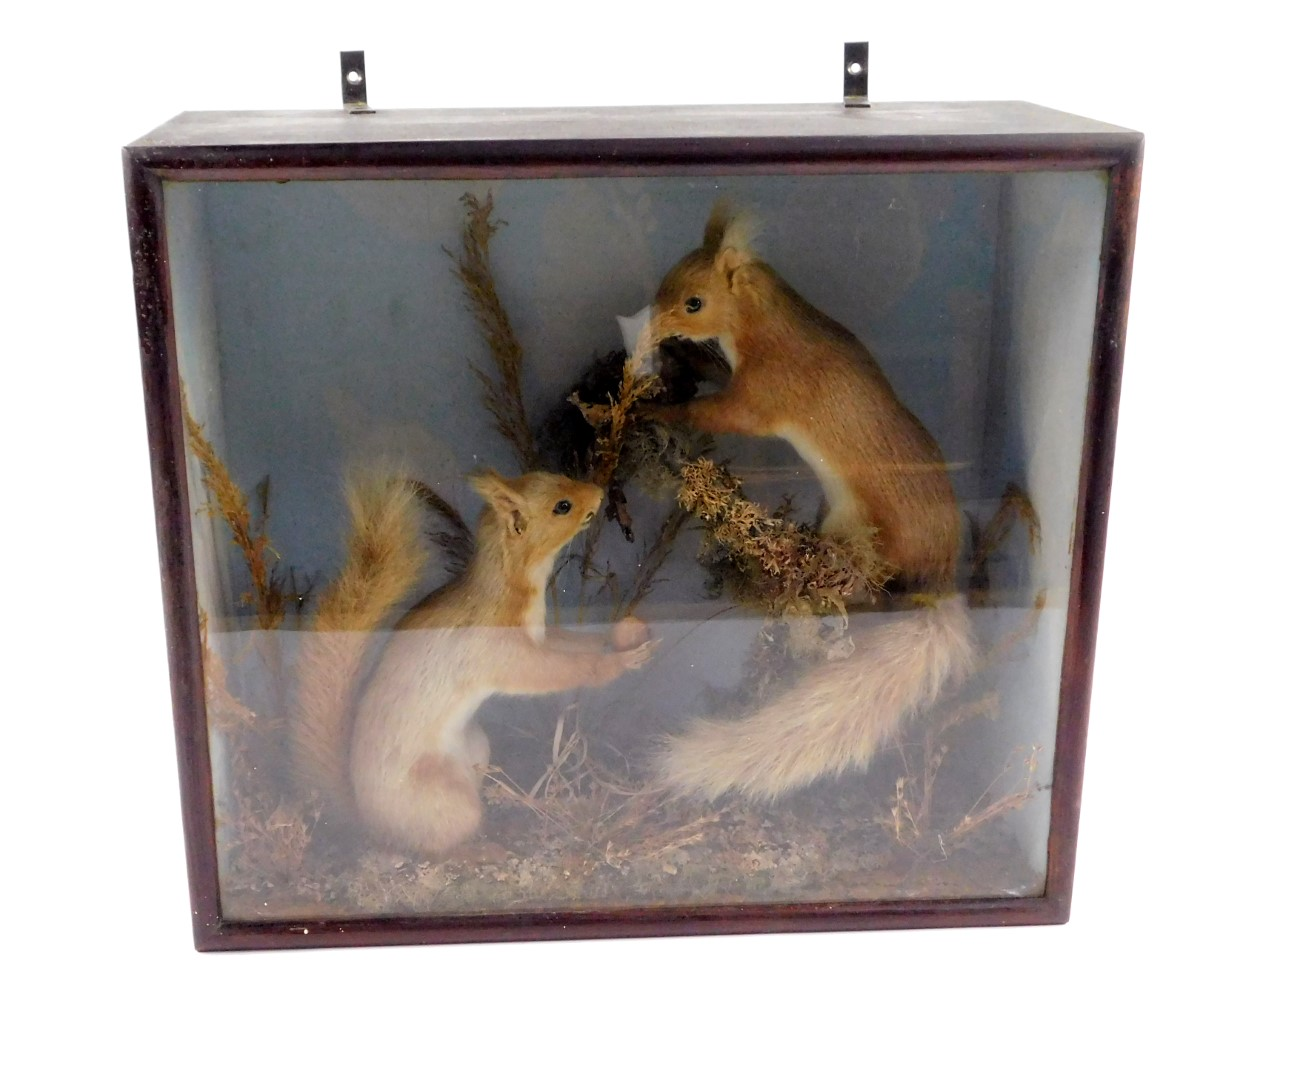 Lot 20 - Taxidermy. A pair of red squirrels, one holding a nut, on a naturalistic ground, cased, 38cm H, 43.